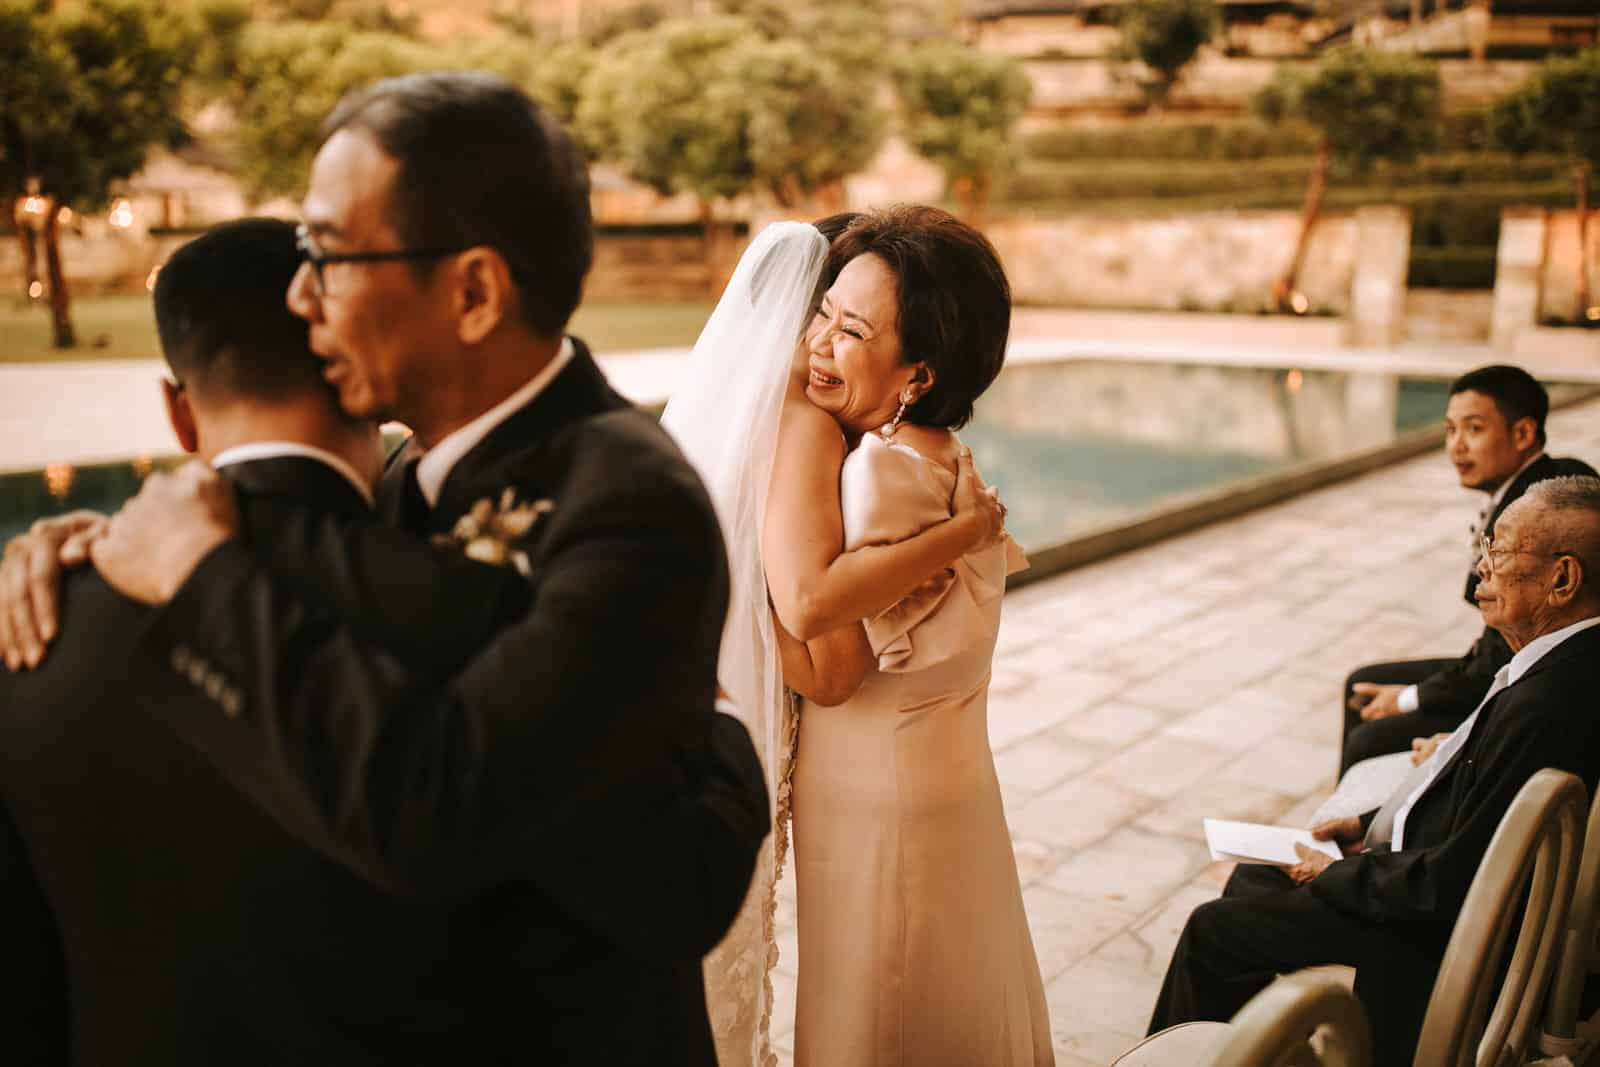 The bride is hugging a wedding guest.